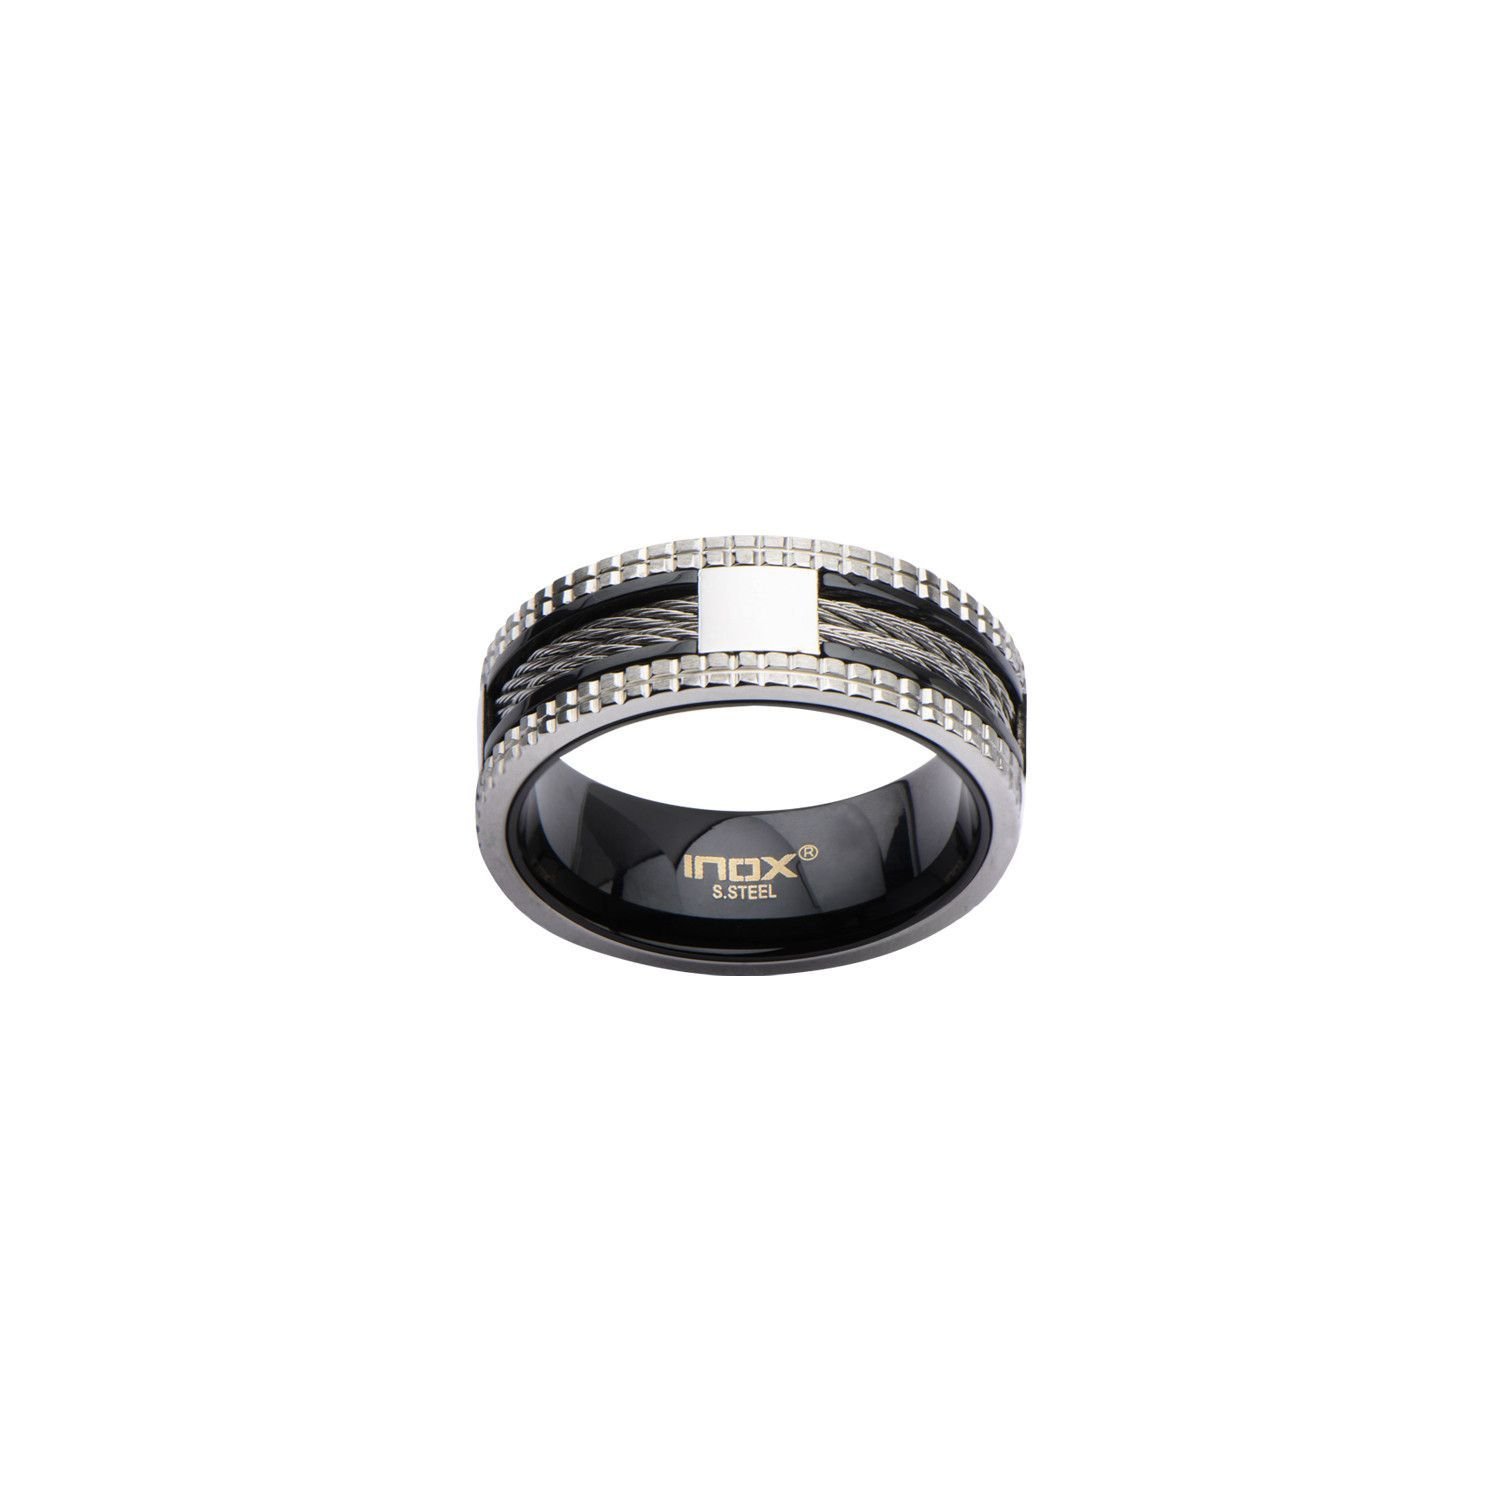 Black IP Ring with Steel Grid Groove on Sides and Cable Inlayed